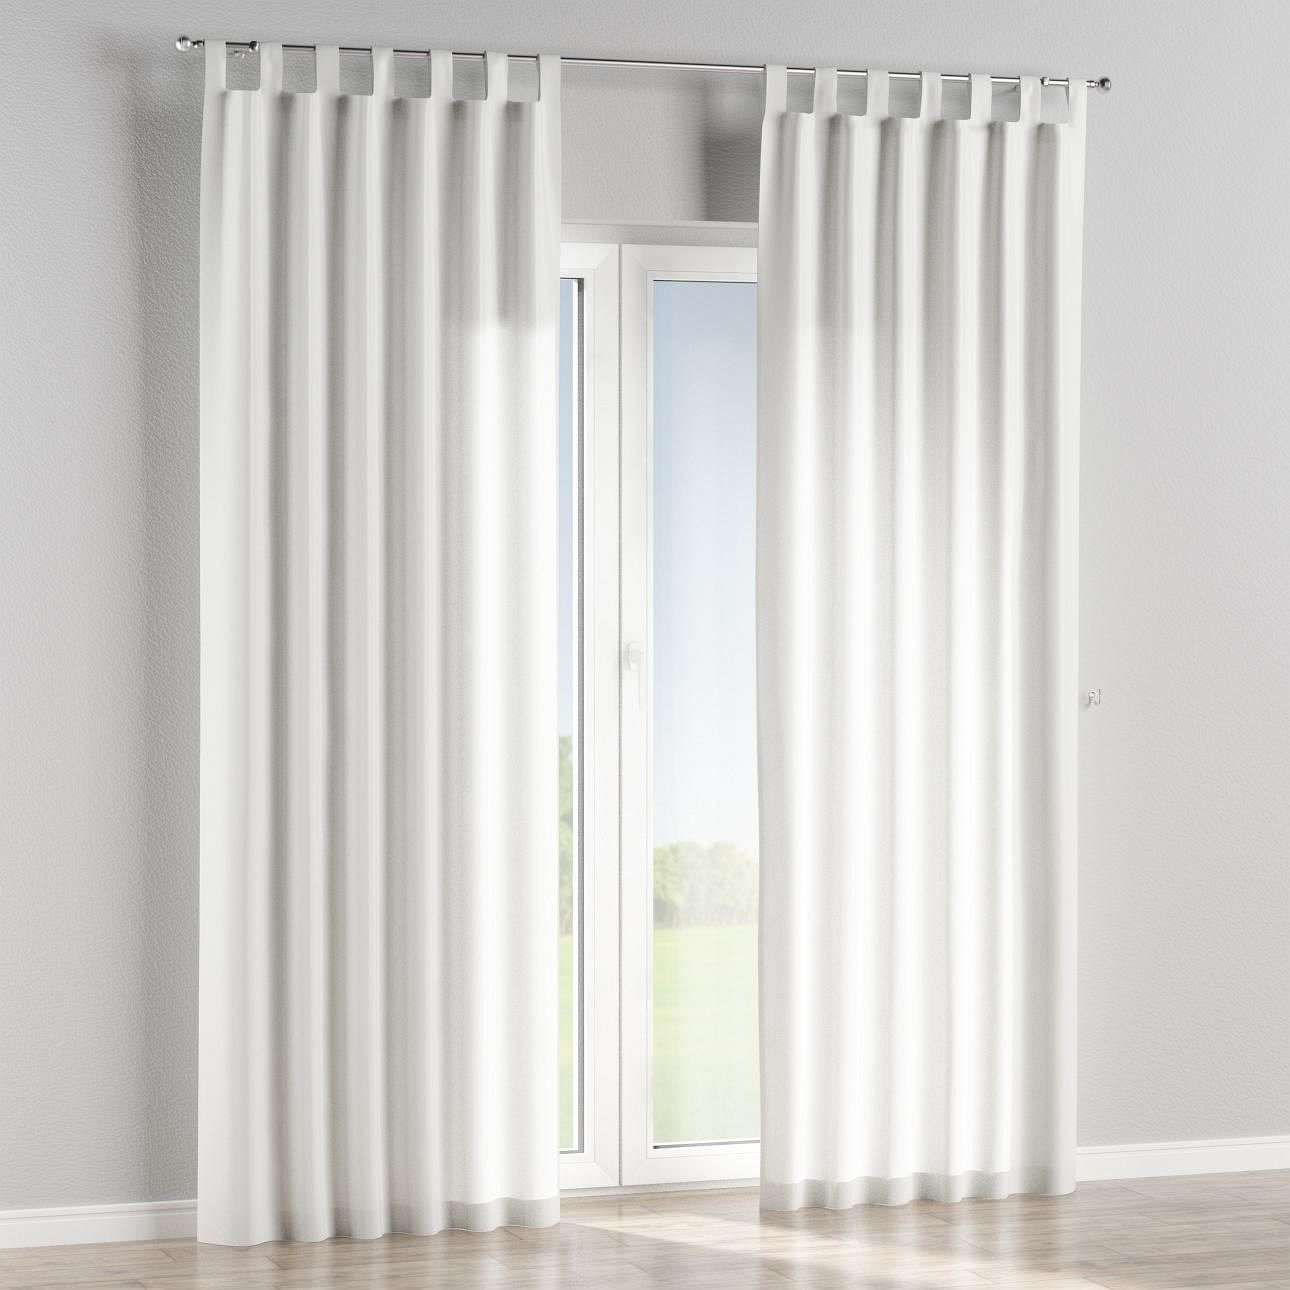 Tab top lined curtains in collection Londres, fabric: 122-08